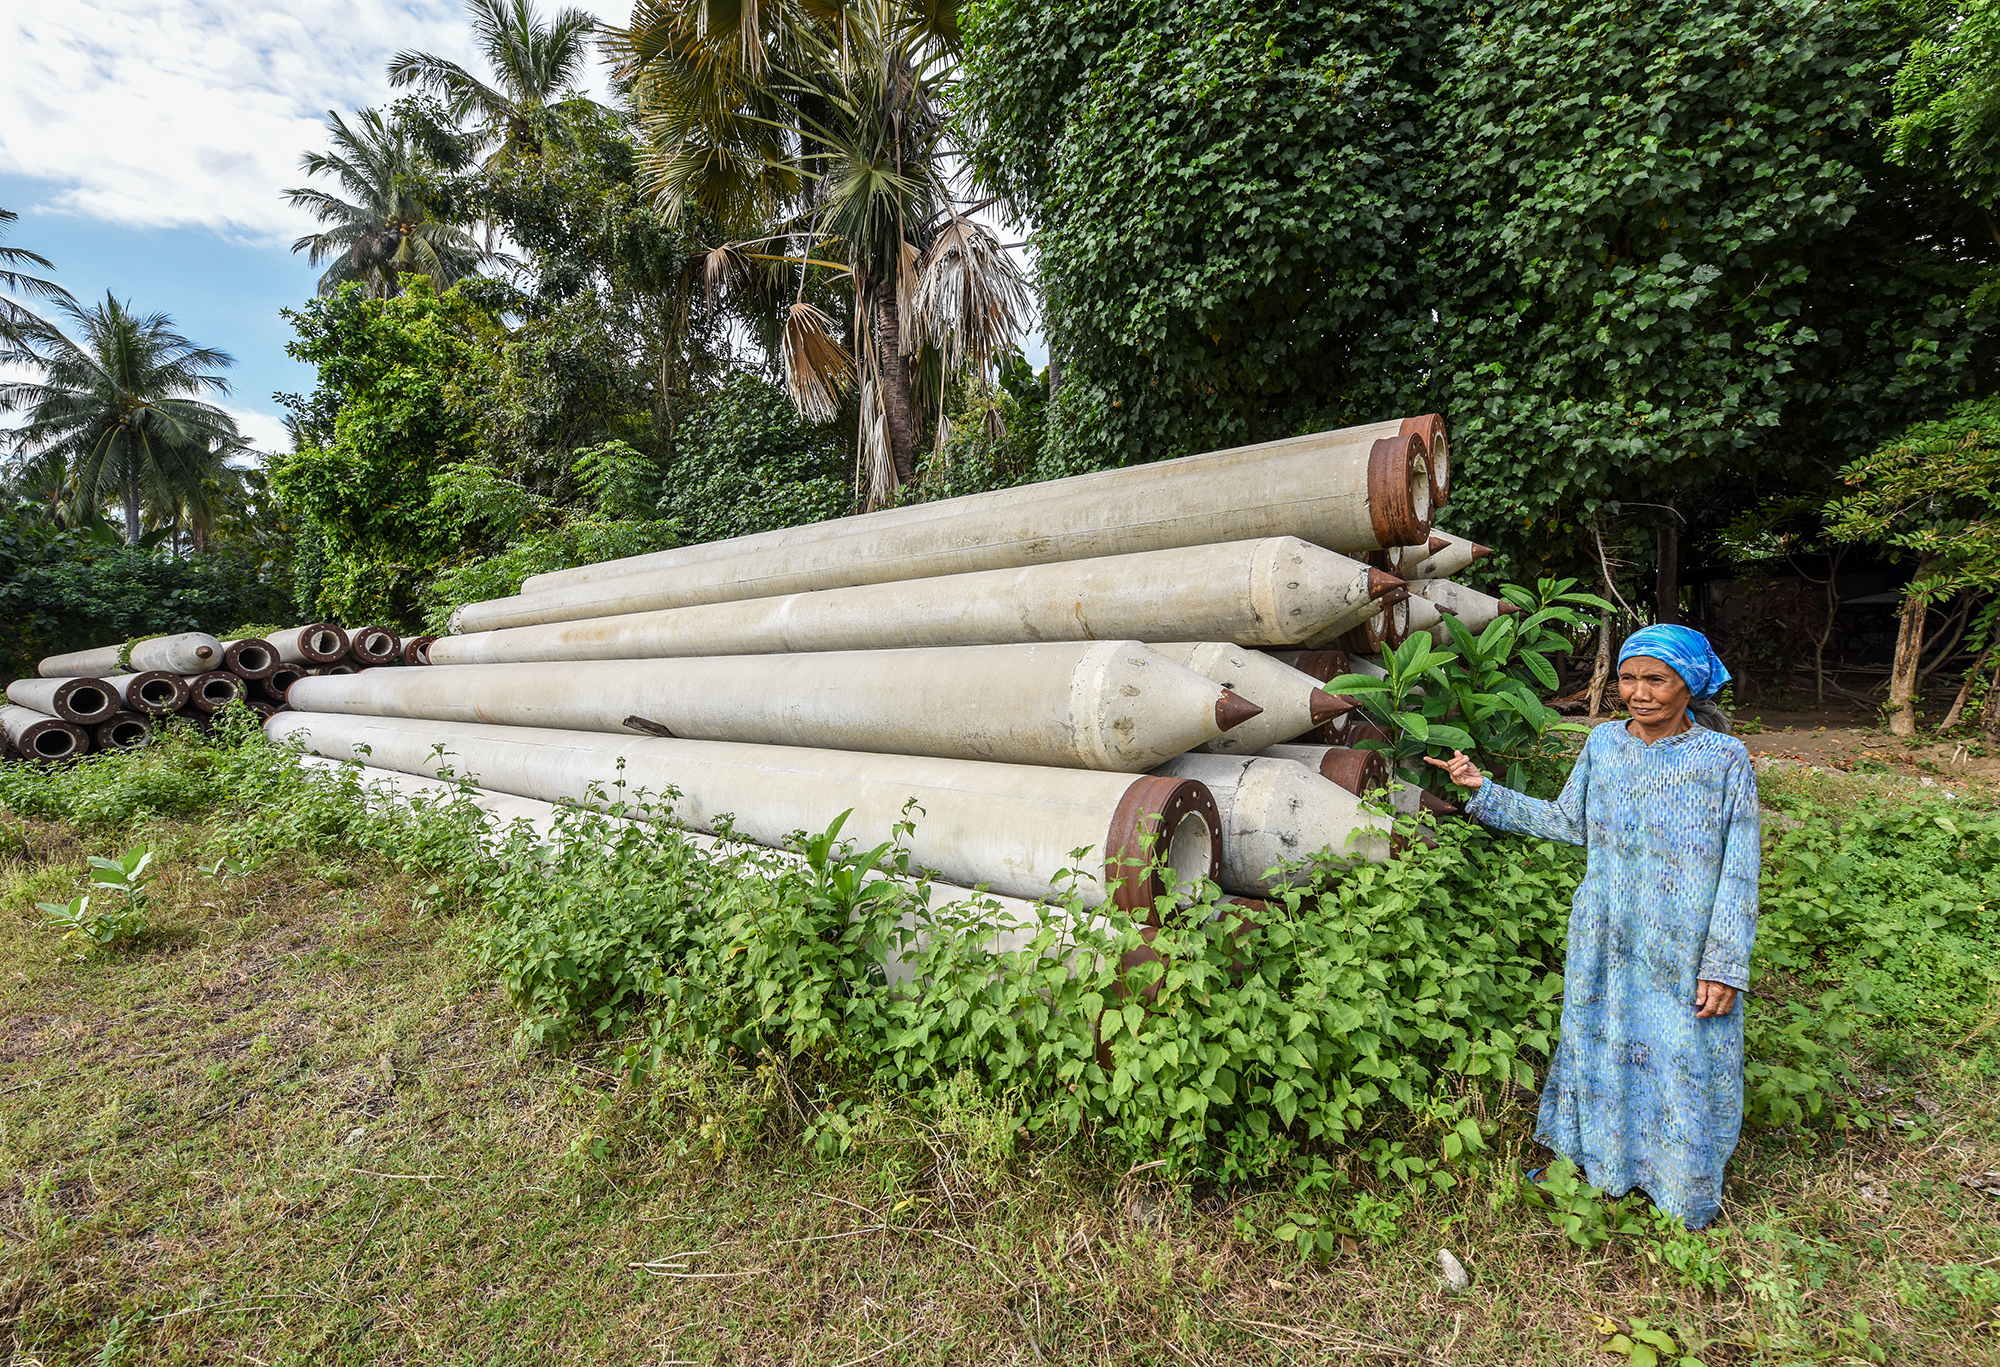 Foundation piles dumped on the edge of Surayah's land when the power plant was built in 2015 (Image: Ade Dani)